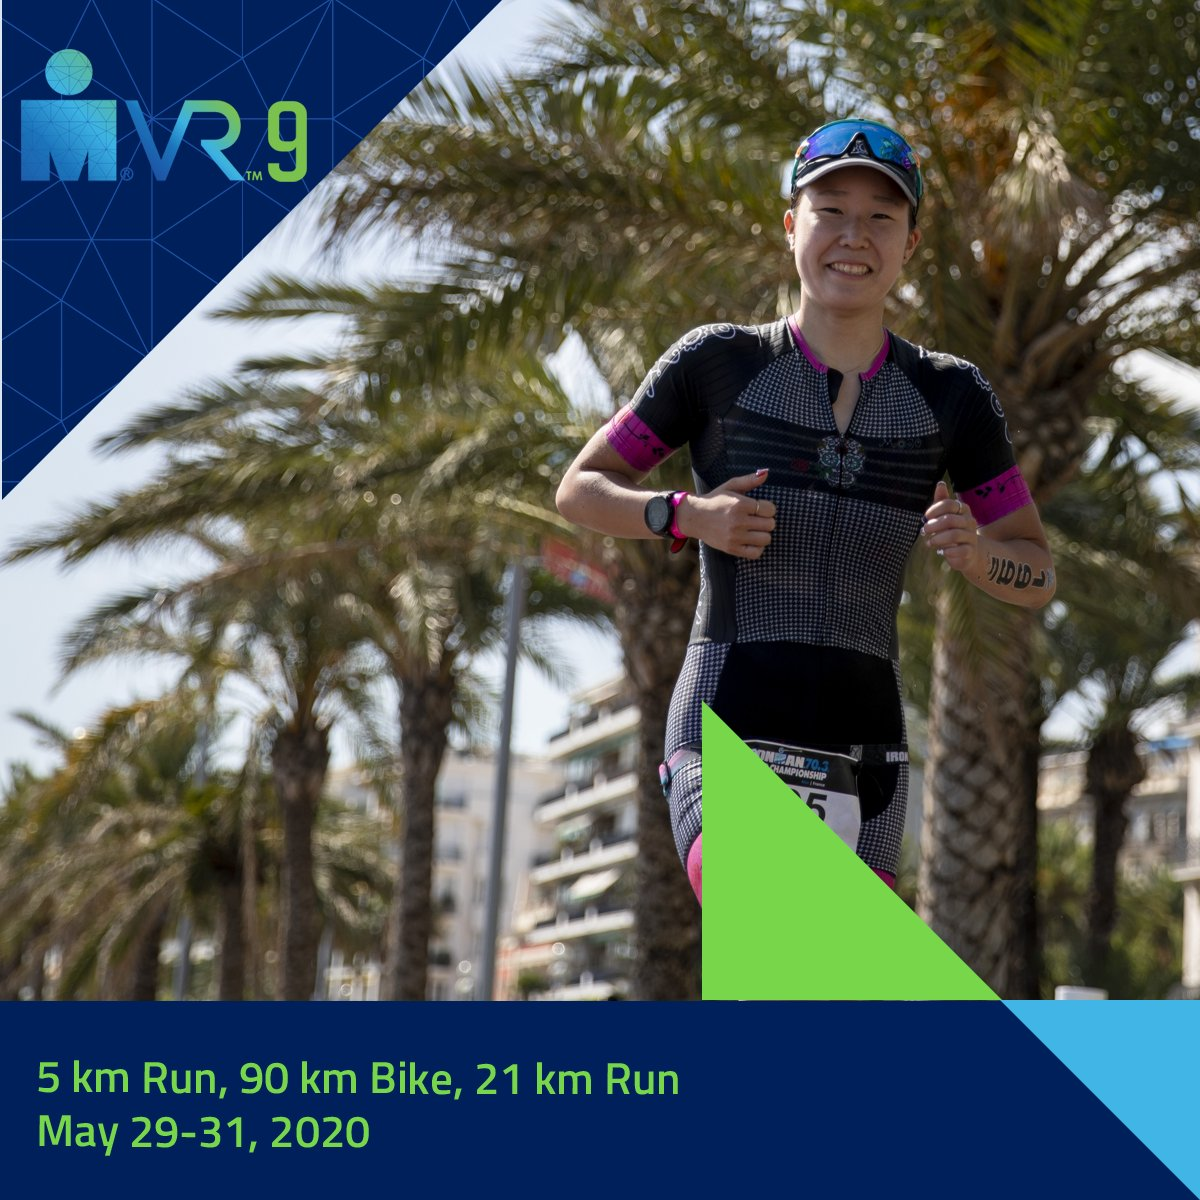 ➡️ Registration is open for IRONMAN VR9! Its a 70.3 simulation, so get prepared to run 5 km, bike 90 km, and run 21 km. Create an account and register for the race at ironmanvirtualclub.com #IRONMANVR9 #AnywhereIsPossible